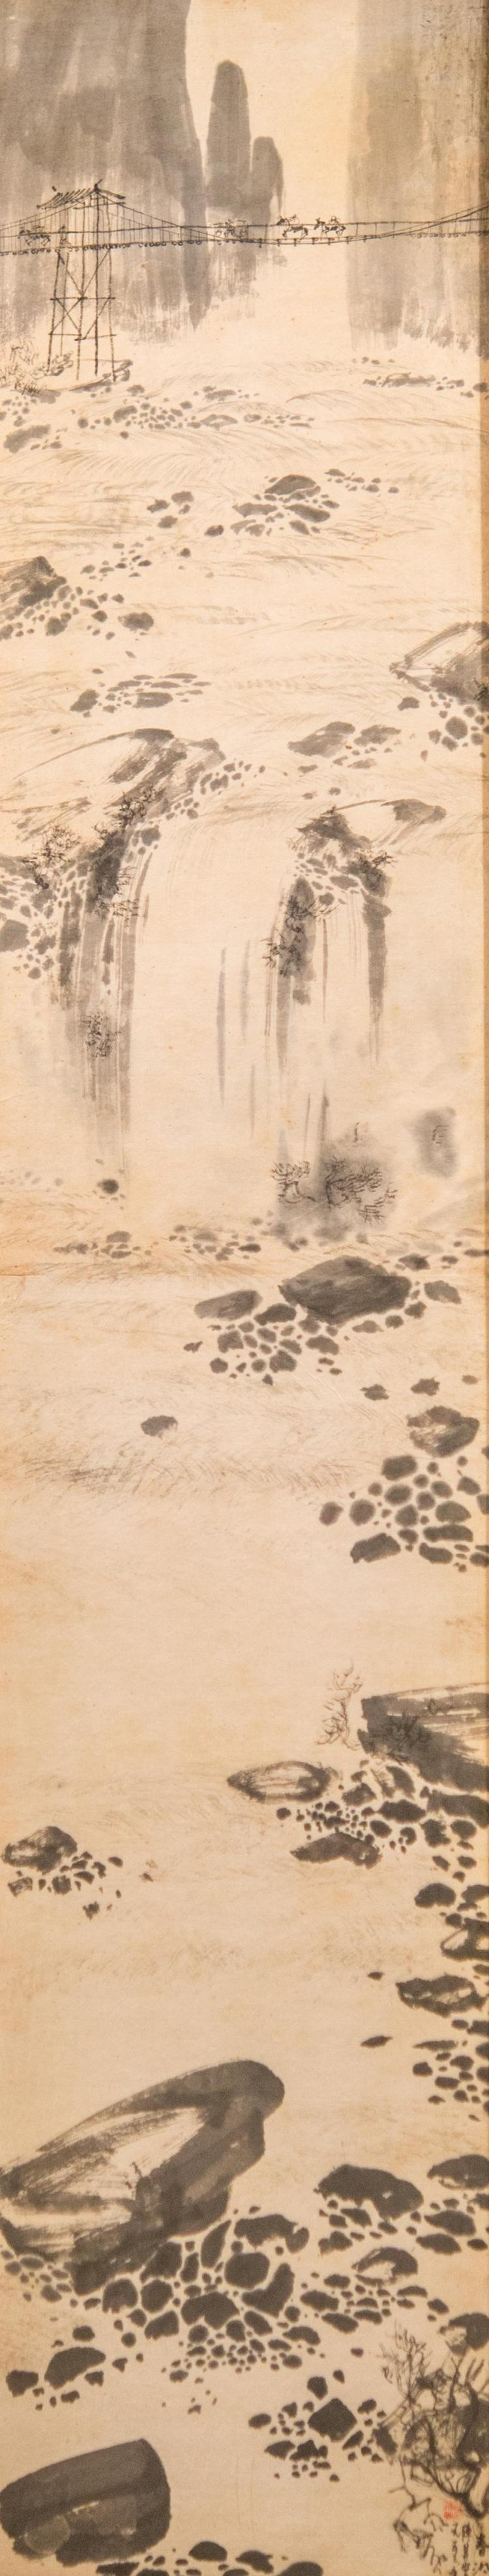 CHI KWAN CHEN, (Chinese, 1921-2007), SOUND OF THE SPRING FLOOD, ca. 1953, watercolor, 47 1/2 x 9 1/2 in. (original frame: 48 1/4 x 1...